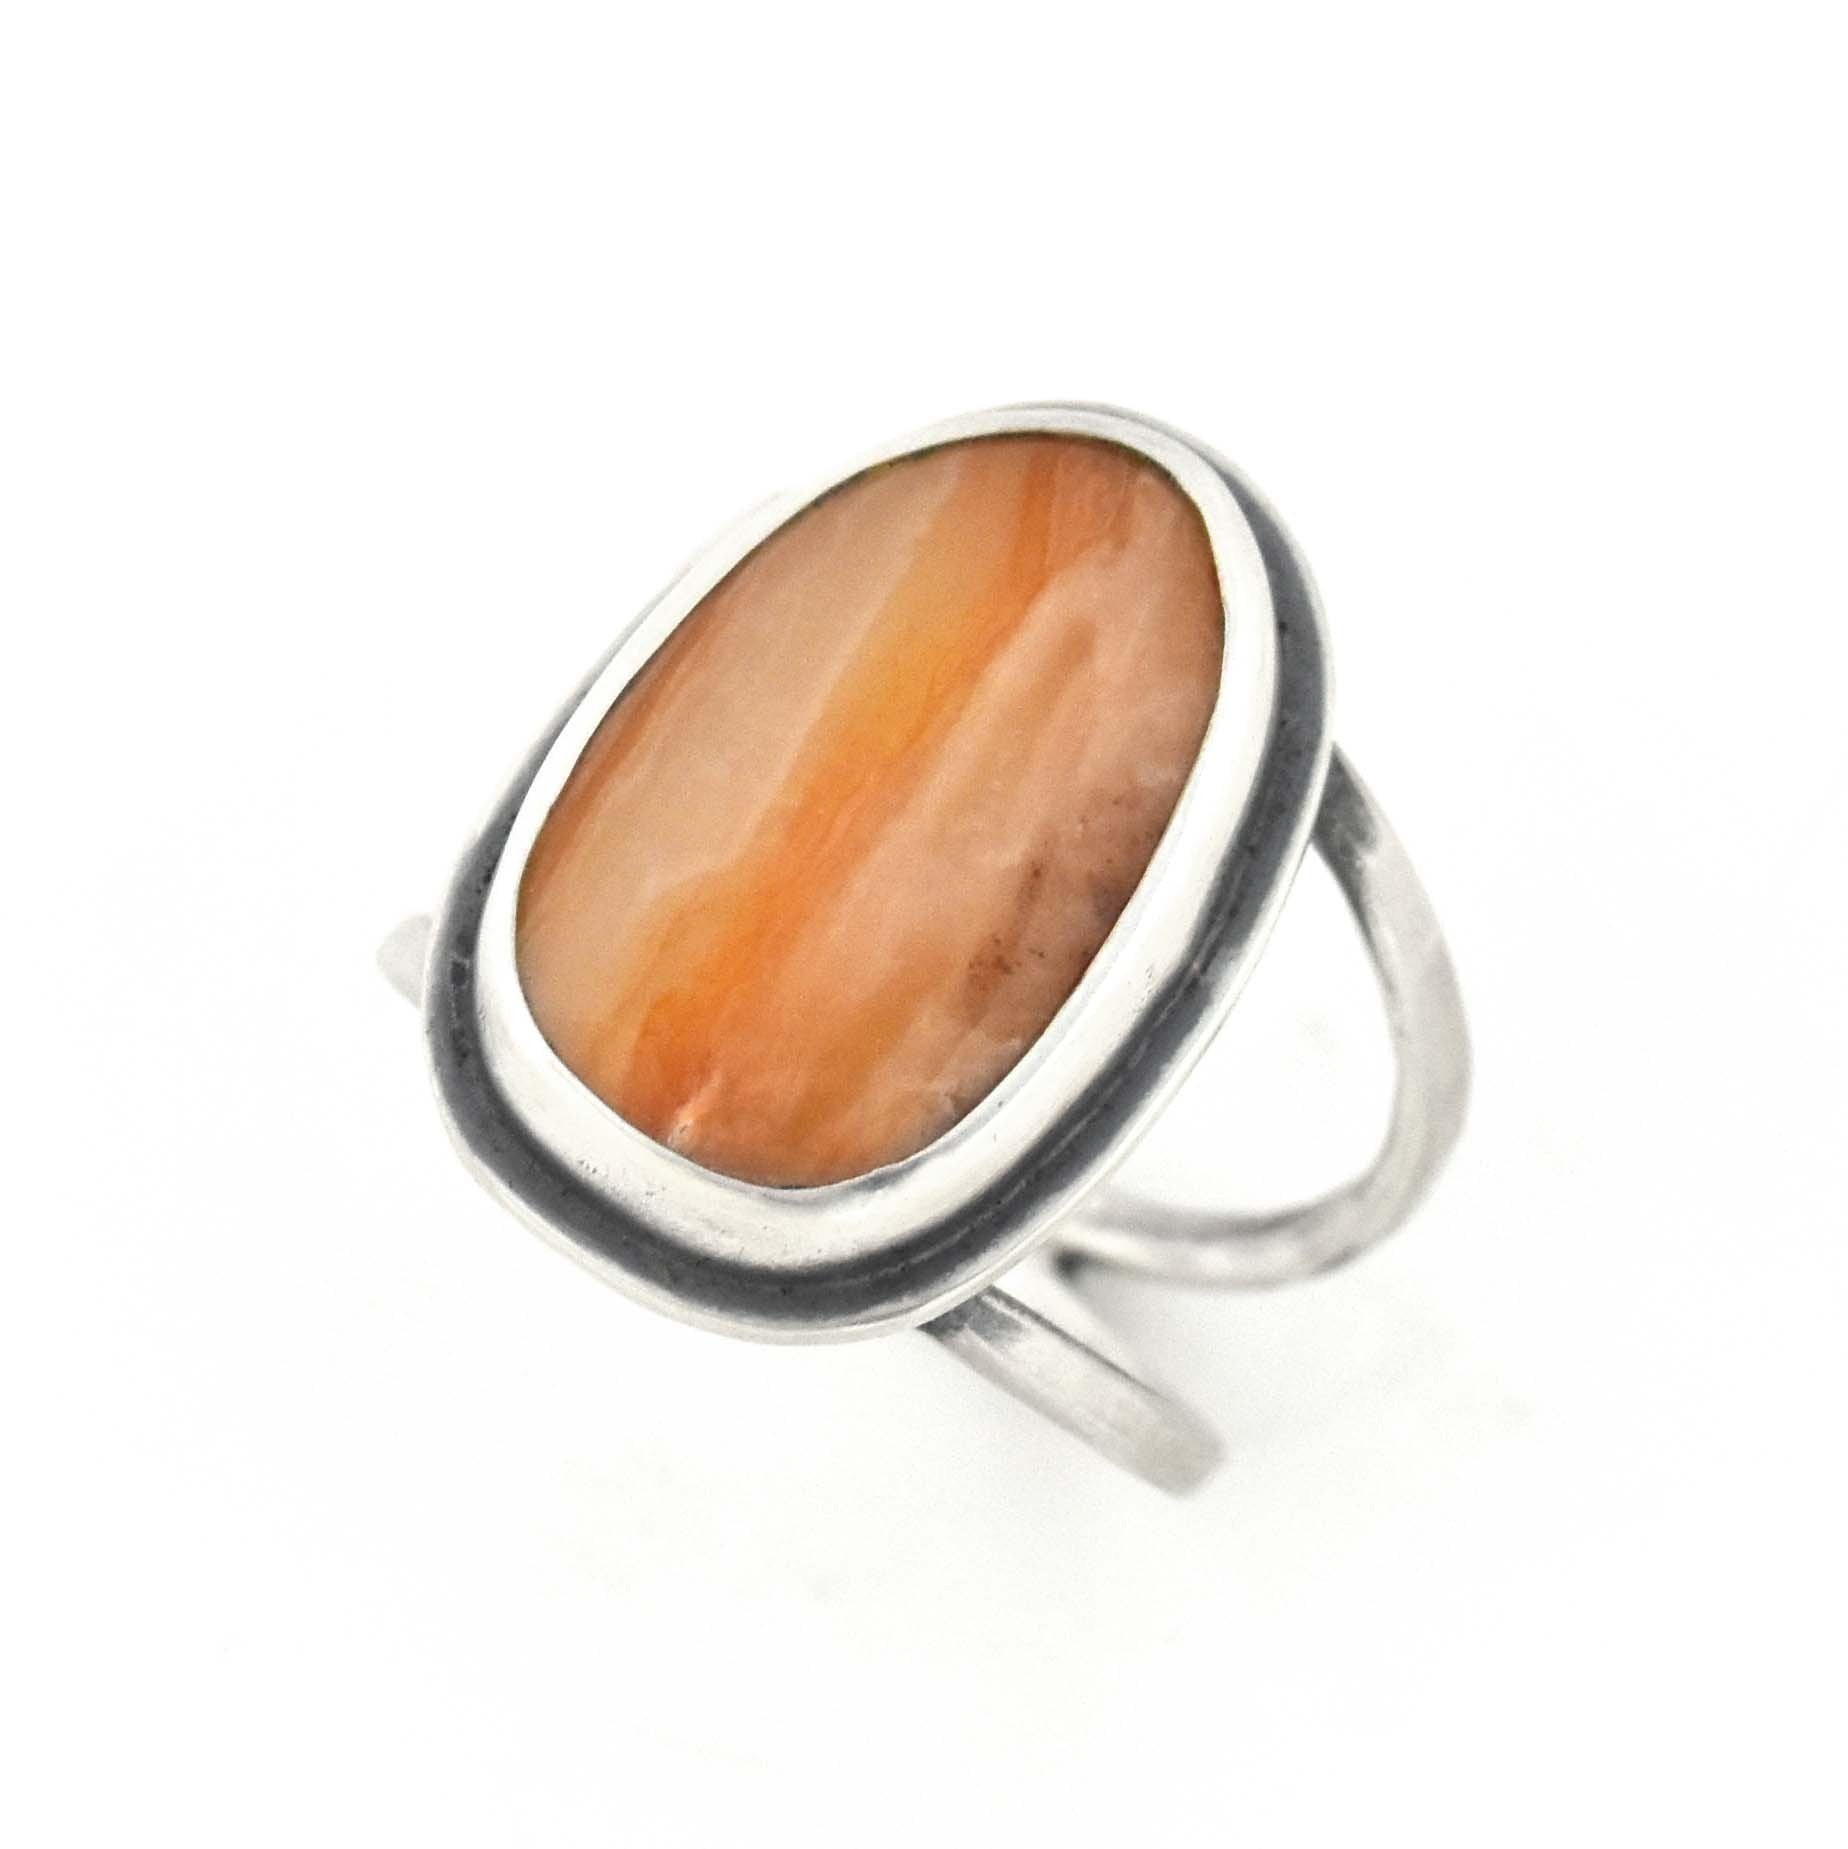 Marquette Lake Superior Agate Ring - Size 7.25, Ring handmade by Beth Millner Jewelry